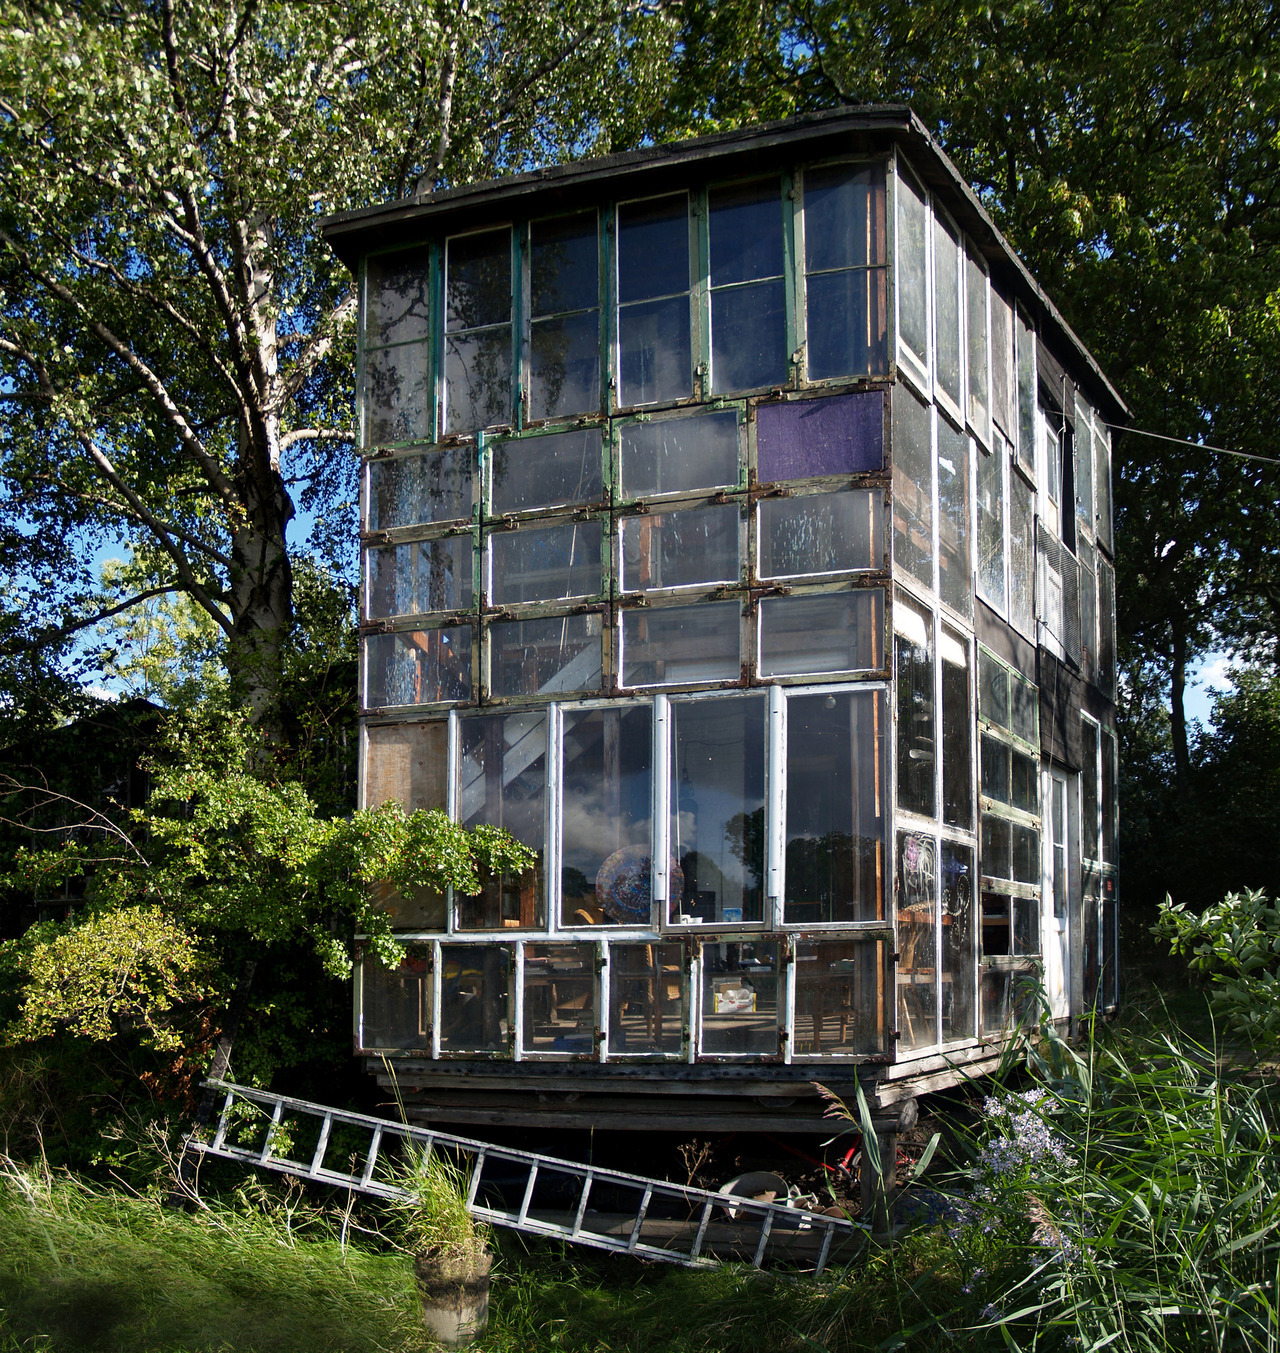 cabinporn:  A salvaged window house in Christiania, Denmark. From Tiny House Blog:  A town within a city, a rebel neighborhood within a well-ordered society. This is Christiania (Freetown), Denmark, a small community smack dab in the middle of Copenhagen, Denmark. Within this community are tiny houses, built by hand and with whatever materials are within reach. Christiania began in 1971 as an occupation of disused army barracks in the southern portion of Copenhagen near a lake. The 900 or so freethinking individuals who inhabit the area are a self governing community who refuse to pay taxes to the Danish government, run their own businesses and schools, live without cars on unpaved roads, build their own houses, restaurants and civil buildings and even have their own currency.   WE COULD DO THIS